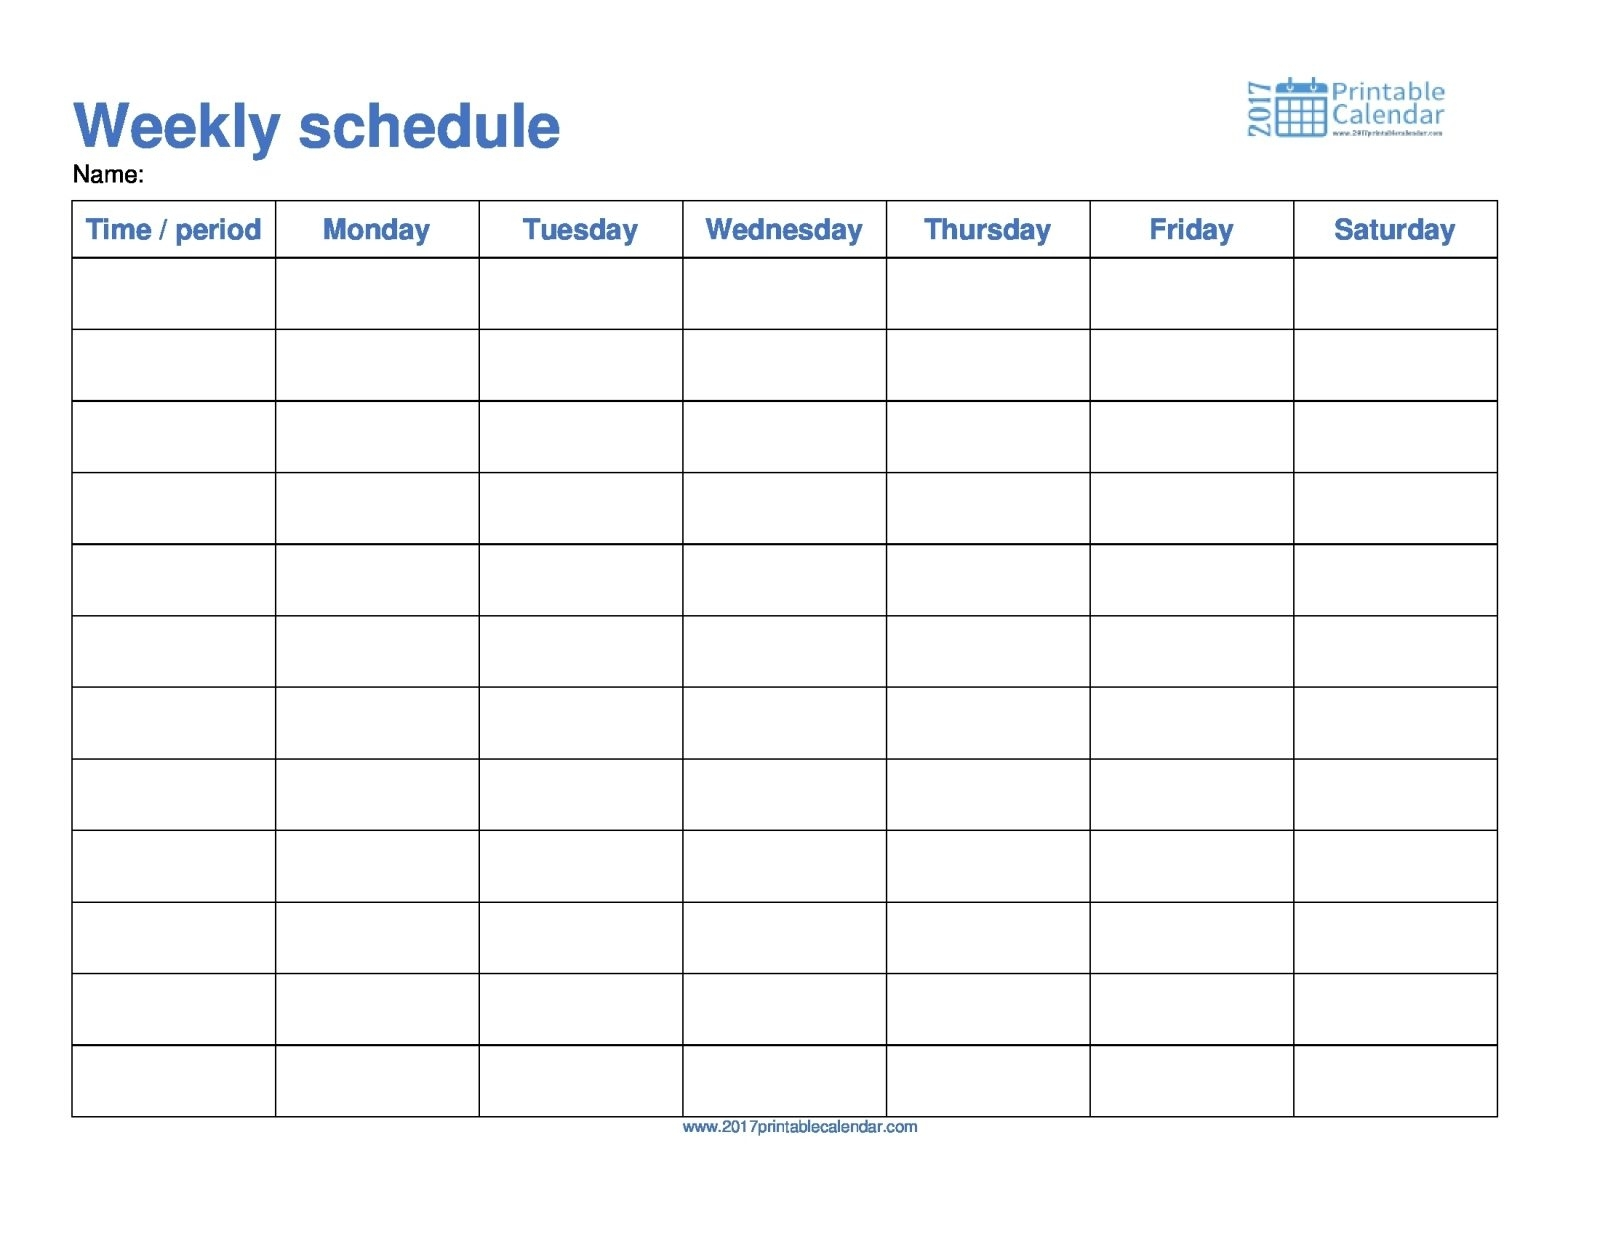 Monday Through Friday Weekly Calendar Template Word Onthly | Smorad intended for Full Size Weekly Calendar Templates